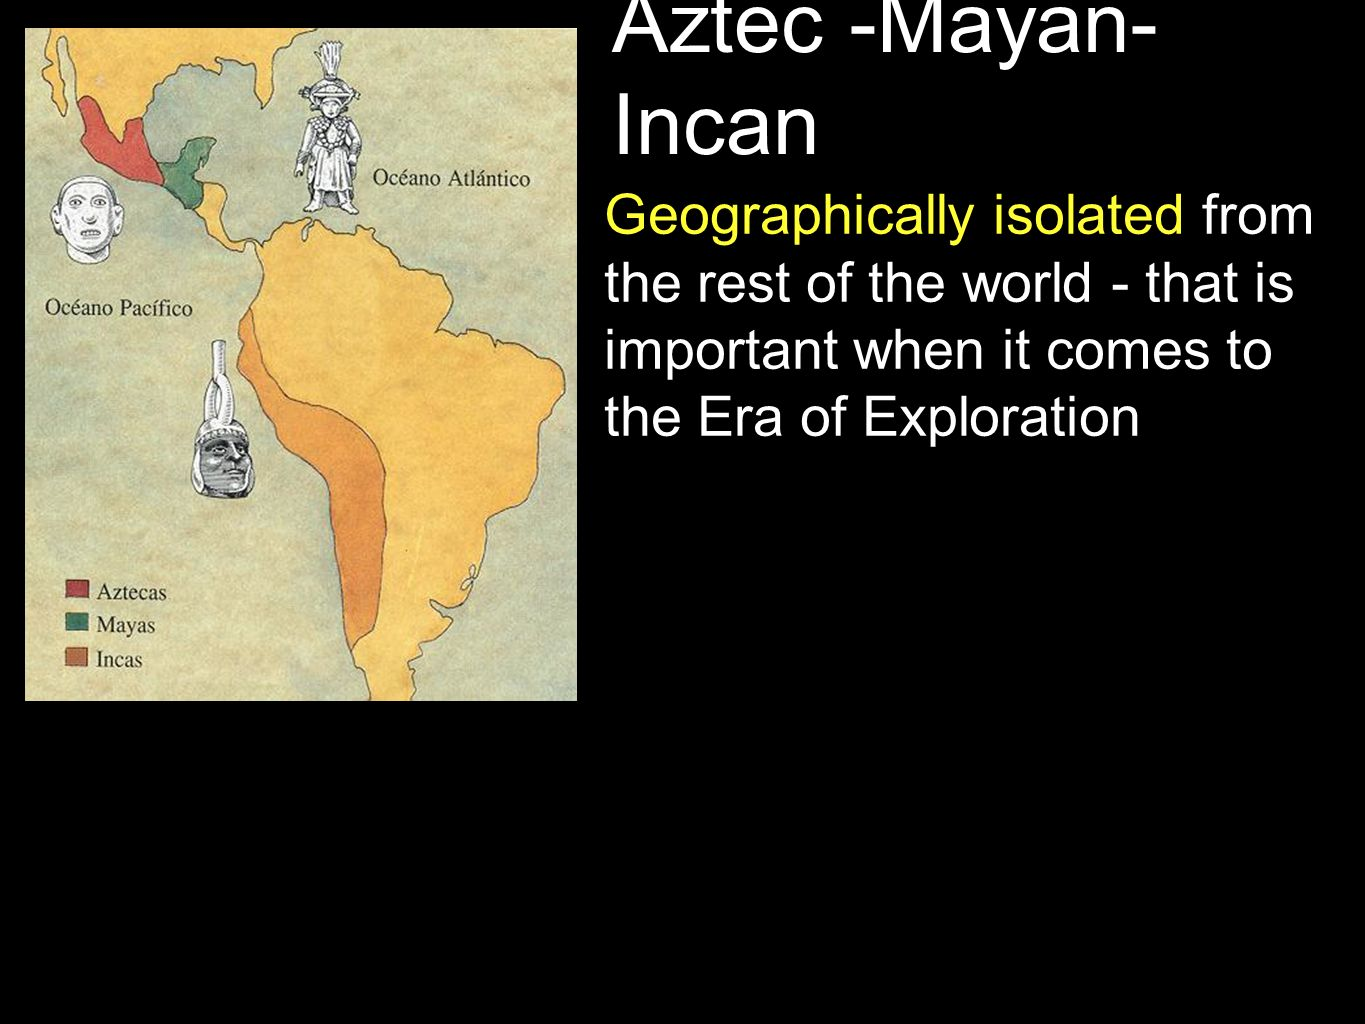 Aztec -Mayan- Incan Geographically isolated from the rest of the world - that is important when it comes to the Era of Exploration